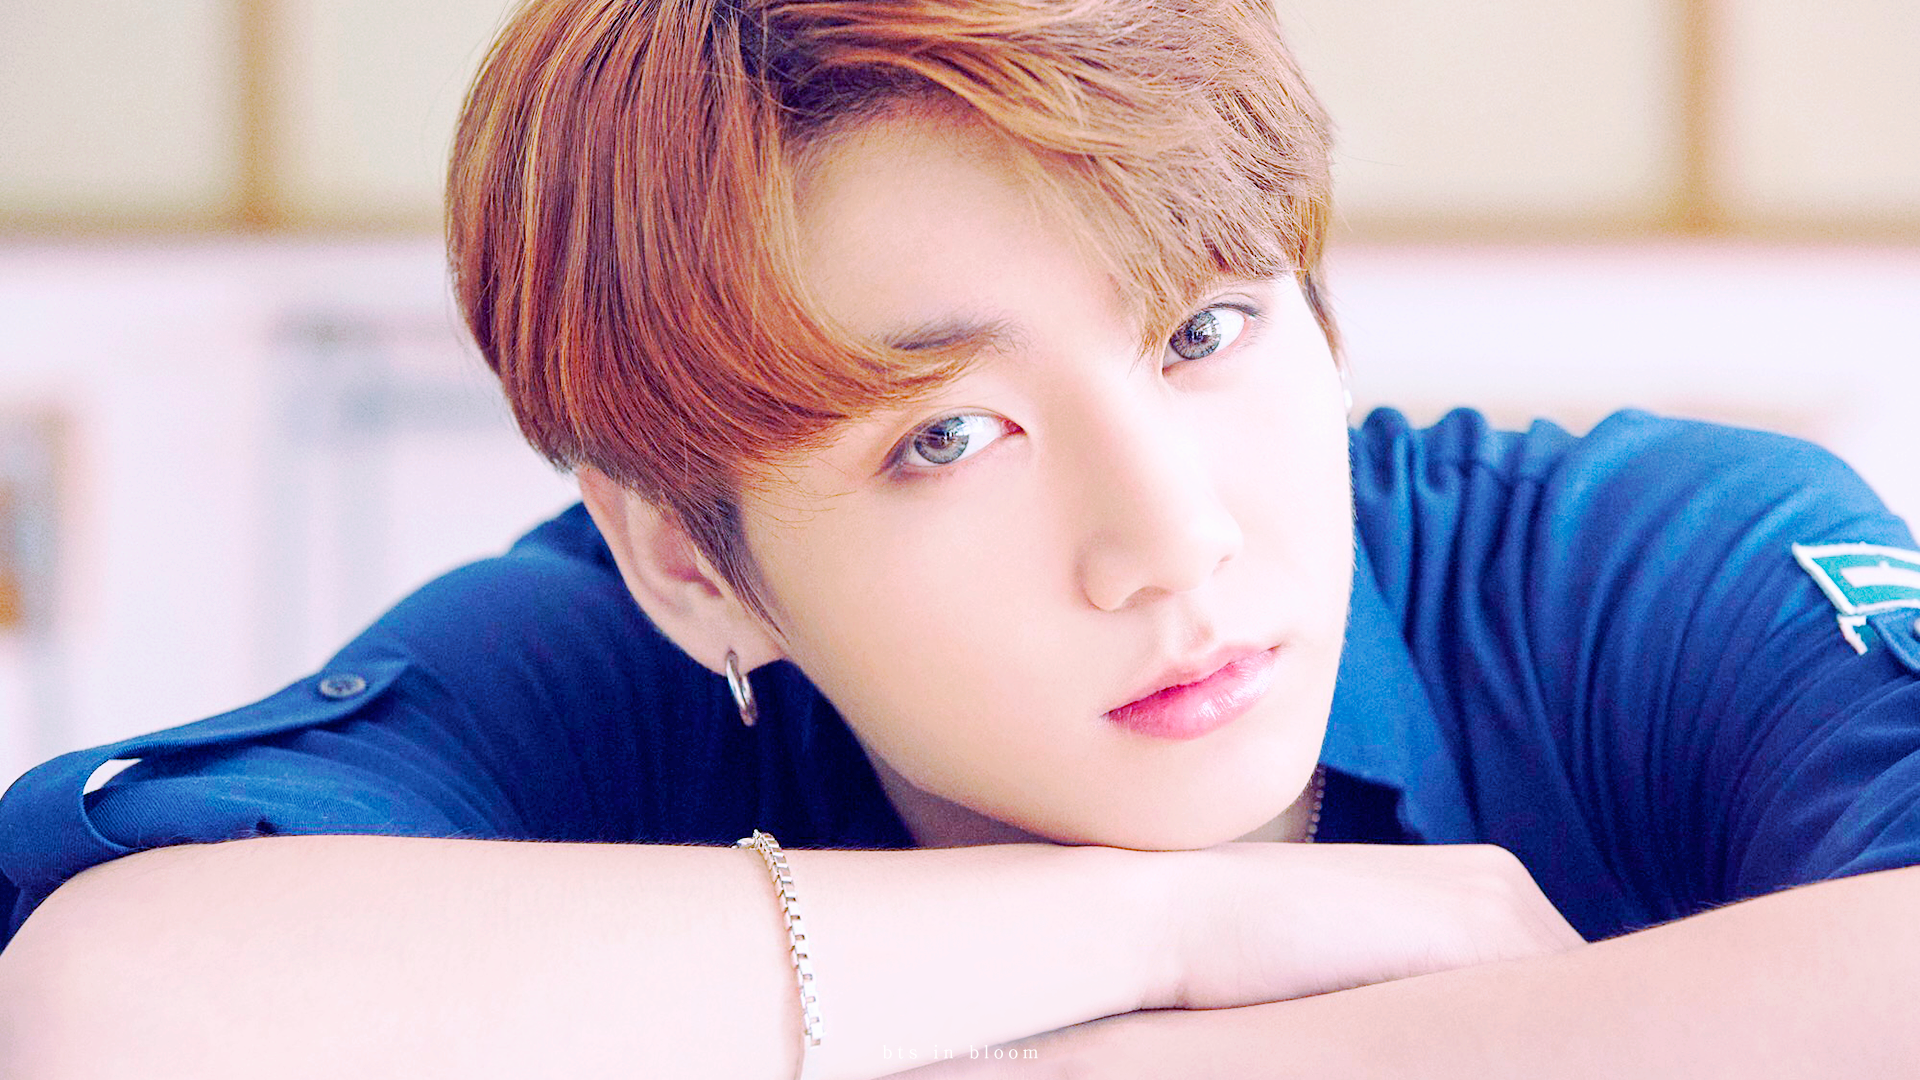 Jungkook Bts Images Jungkookie Hd Wallpaper And Background Photos